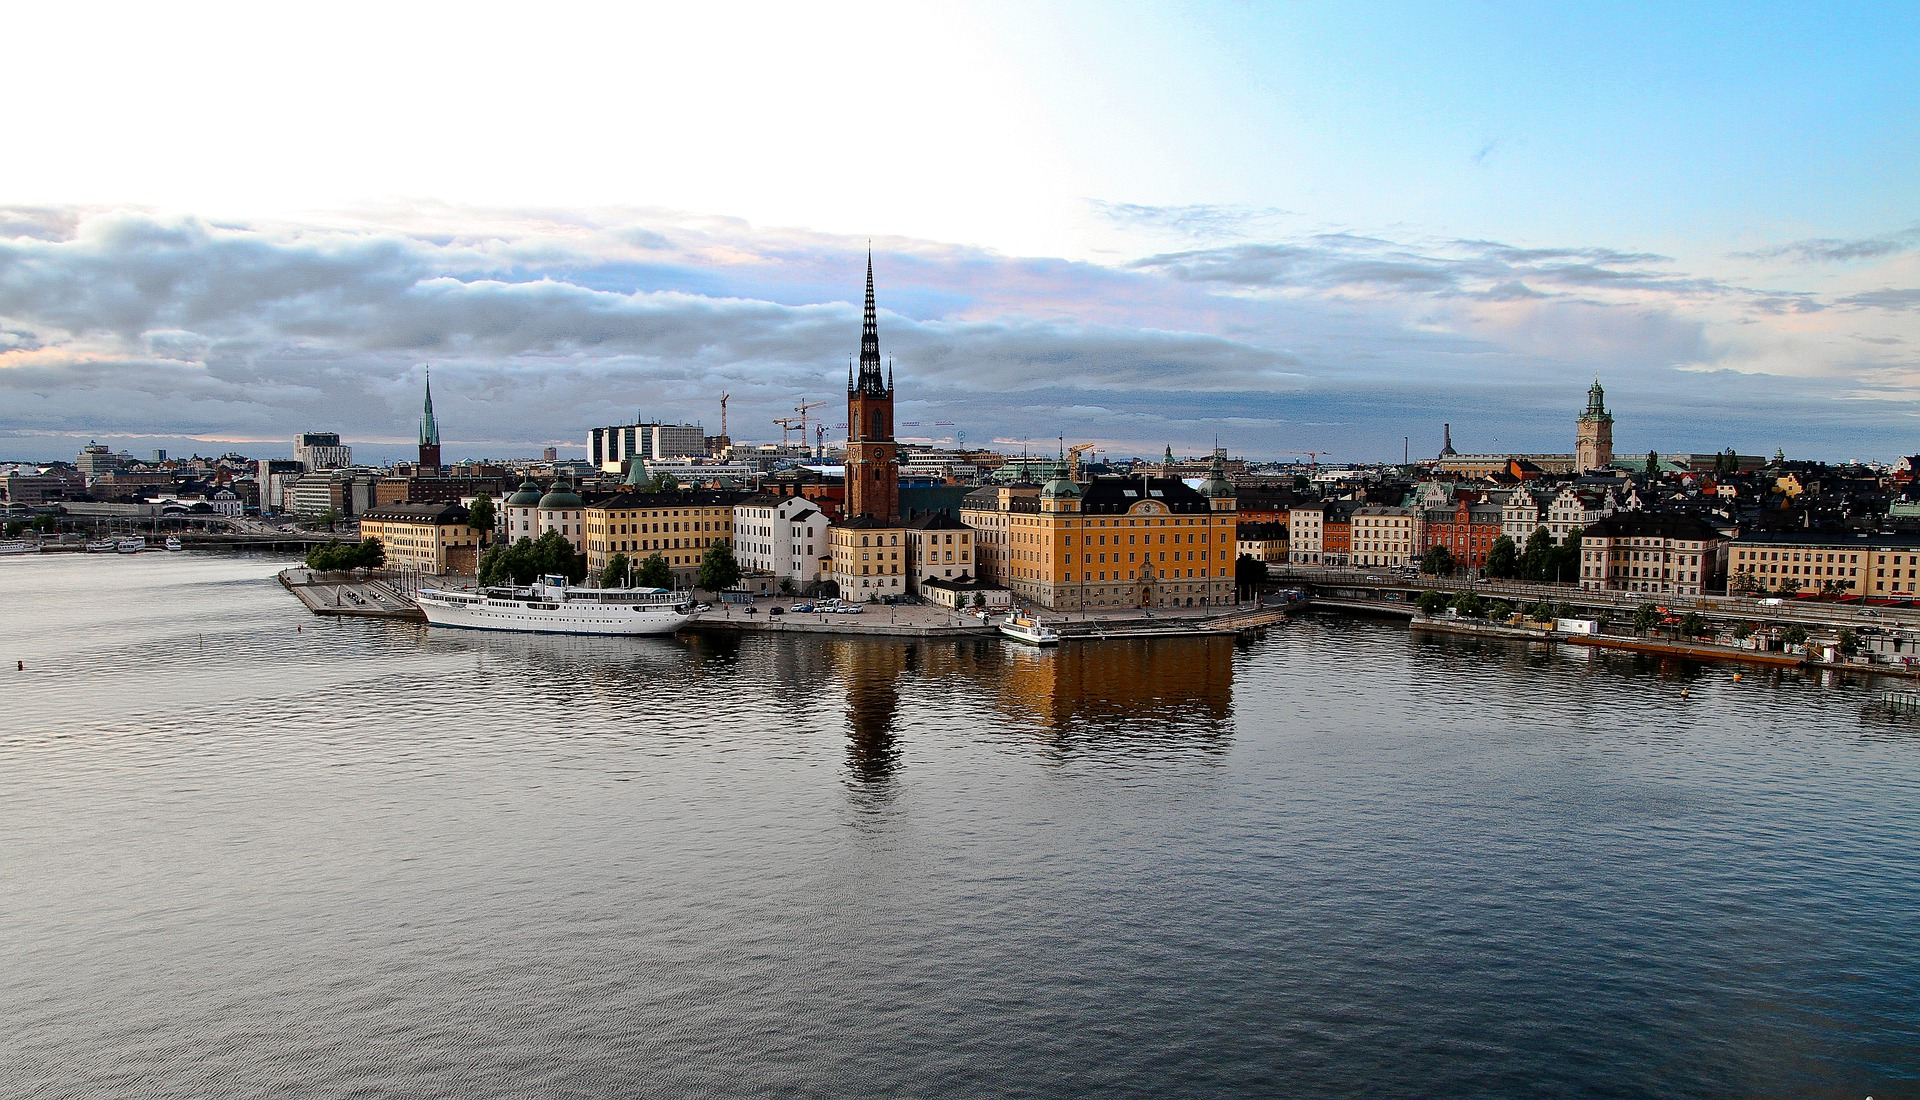 Access to cash: Sweden is thinking twice about all cashless